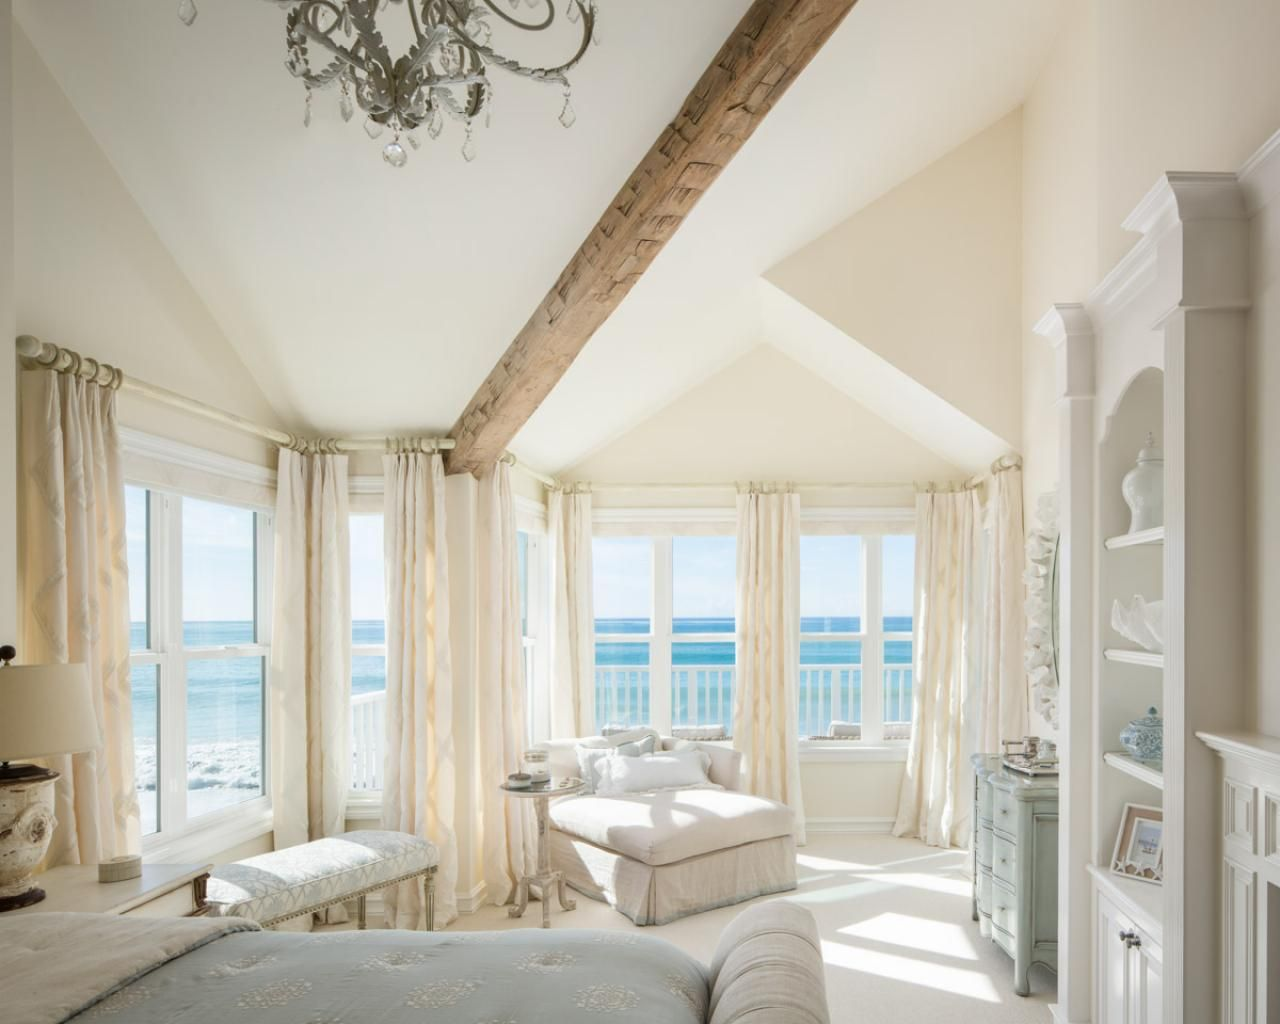 Beach house with soft natural white